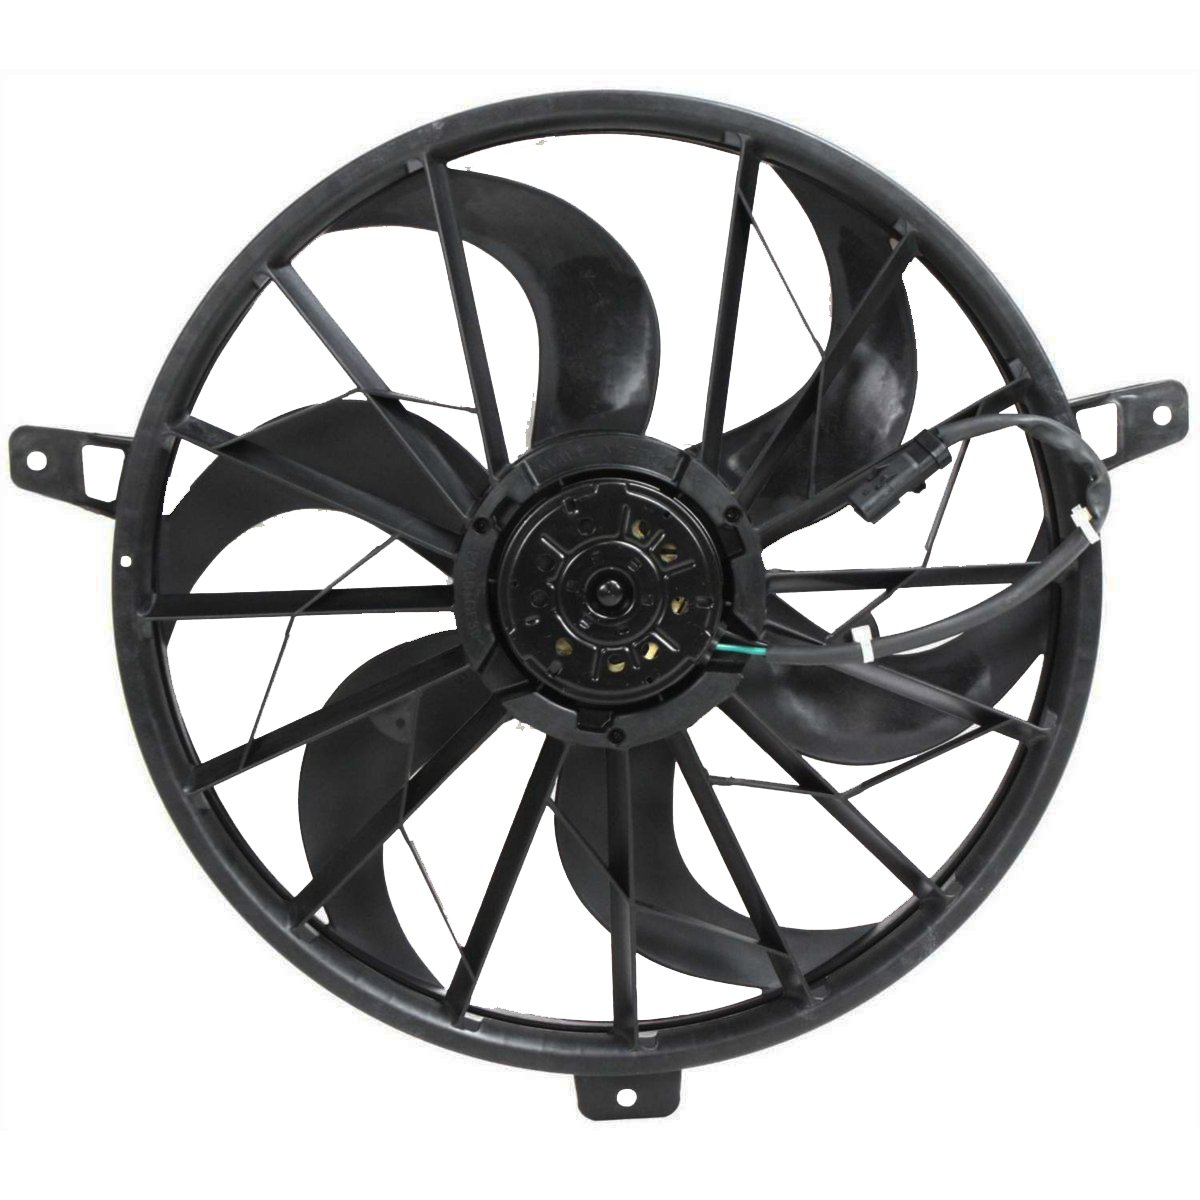 RADIATOR COOLING FAN FOR JEEP FITS GRAND CHEROKEE LIBERTY CH3116115